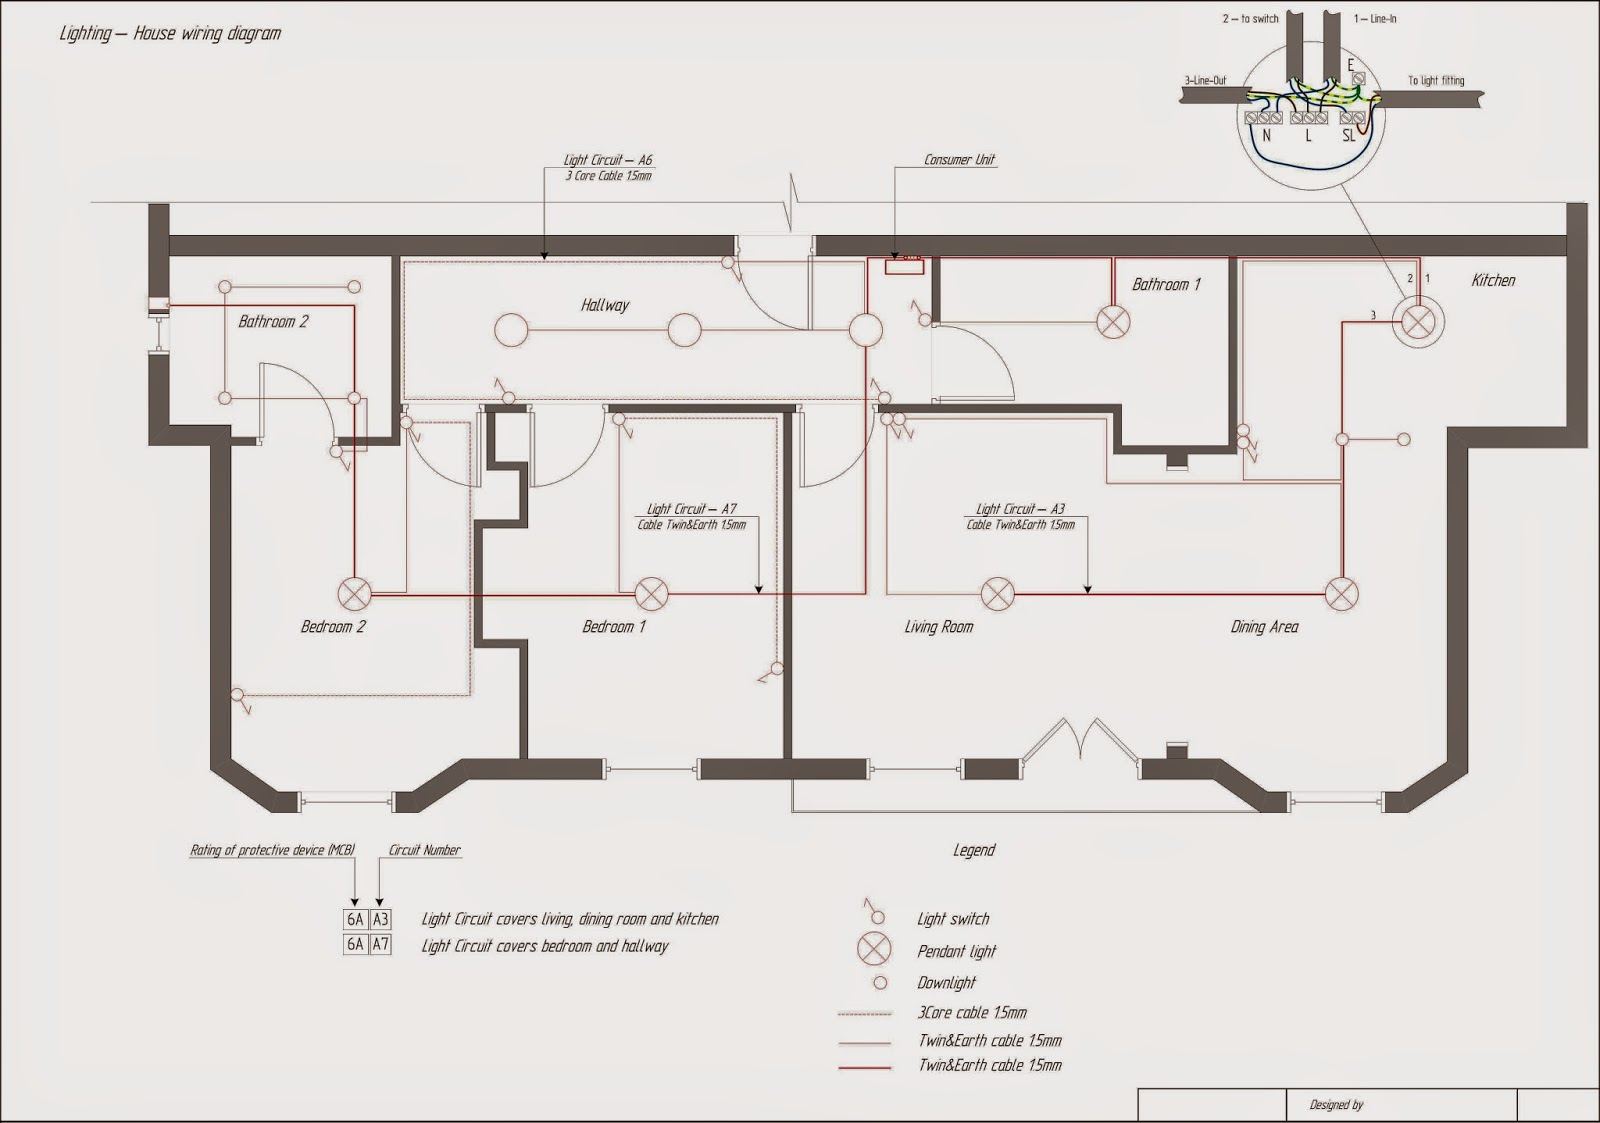 Epiphone Lp Wiring Diagram further Weebly Wiring Diagrams furthermore Xfinity Security Wiring Diagram as well Ex les Of Simple Systems further Pole Barn Roof Diagram. on residential wiring diagram ex les